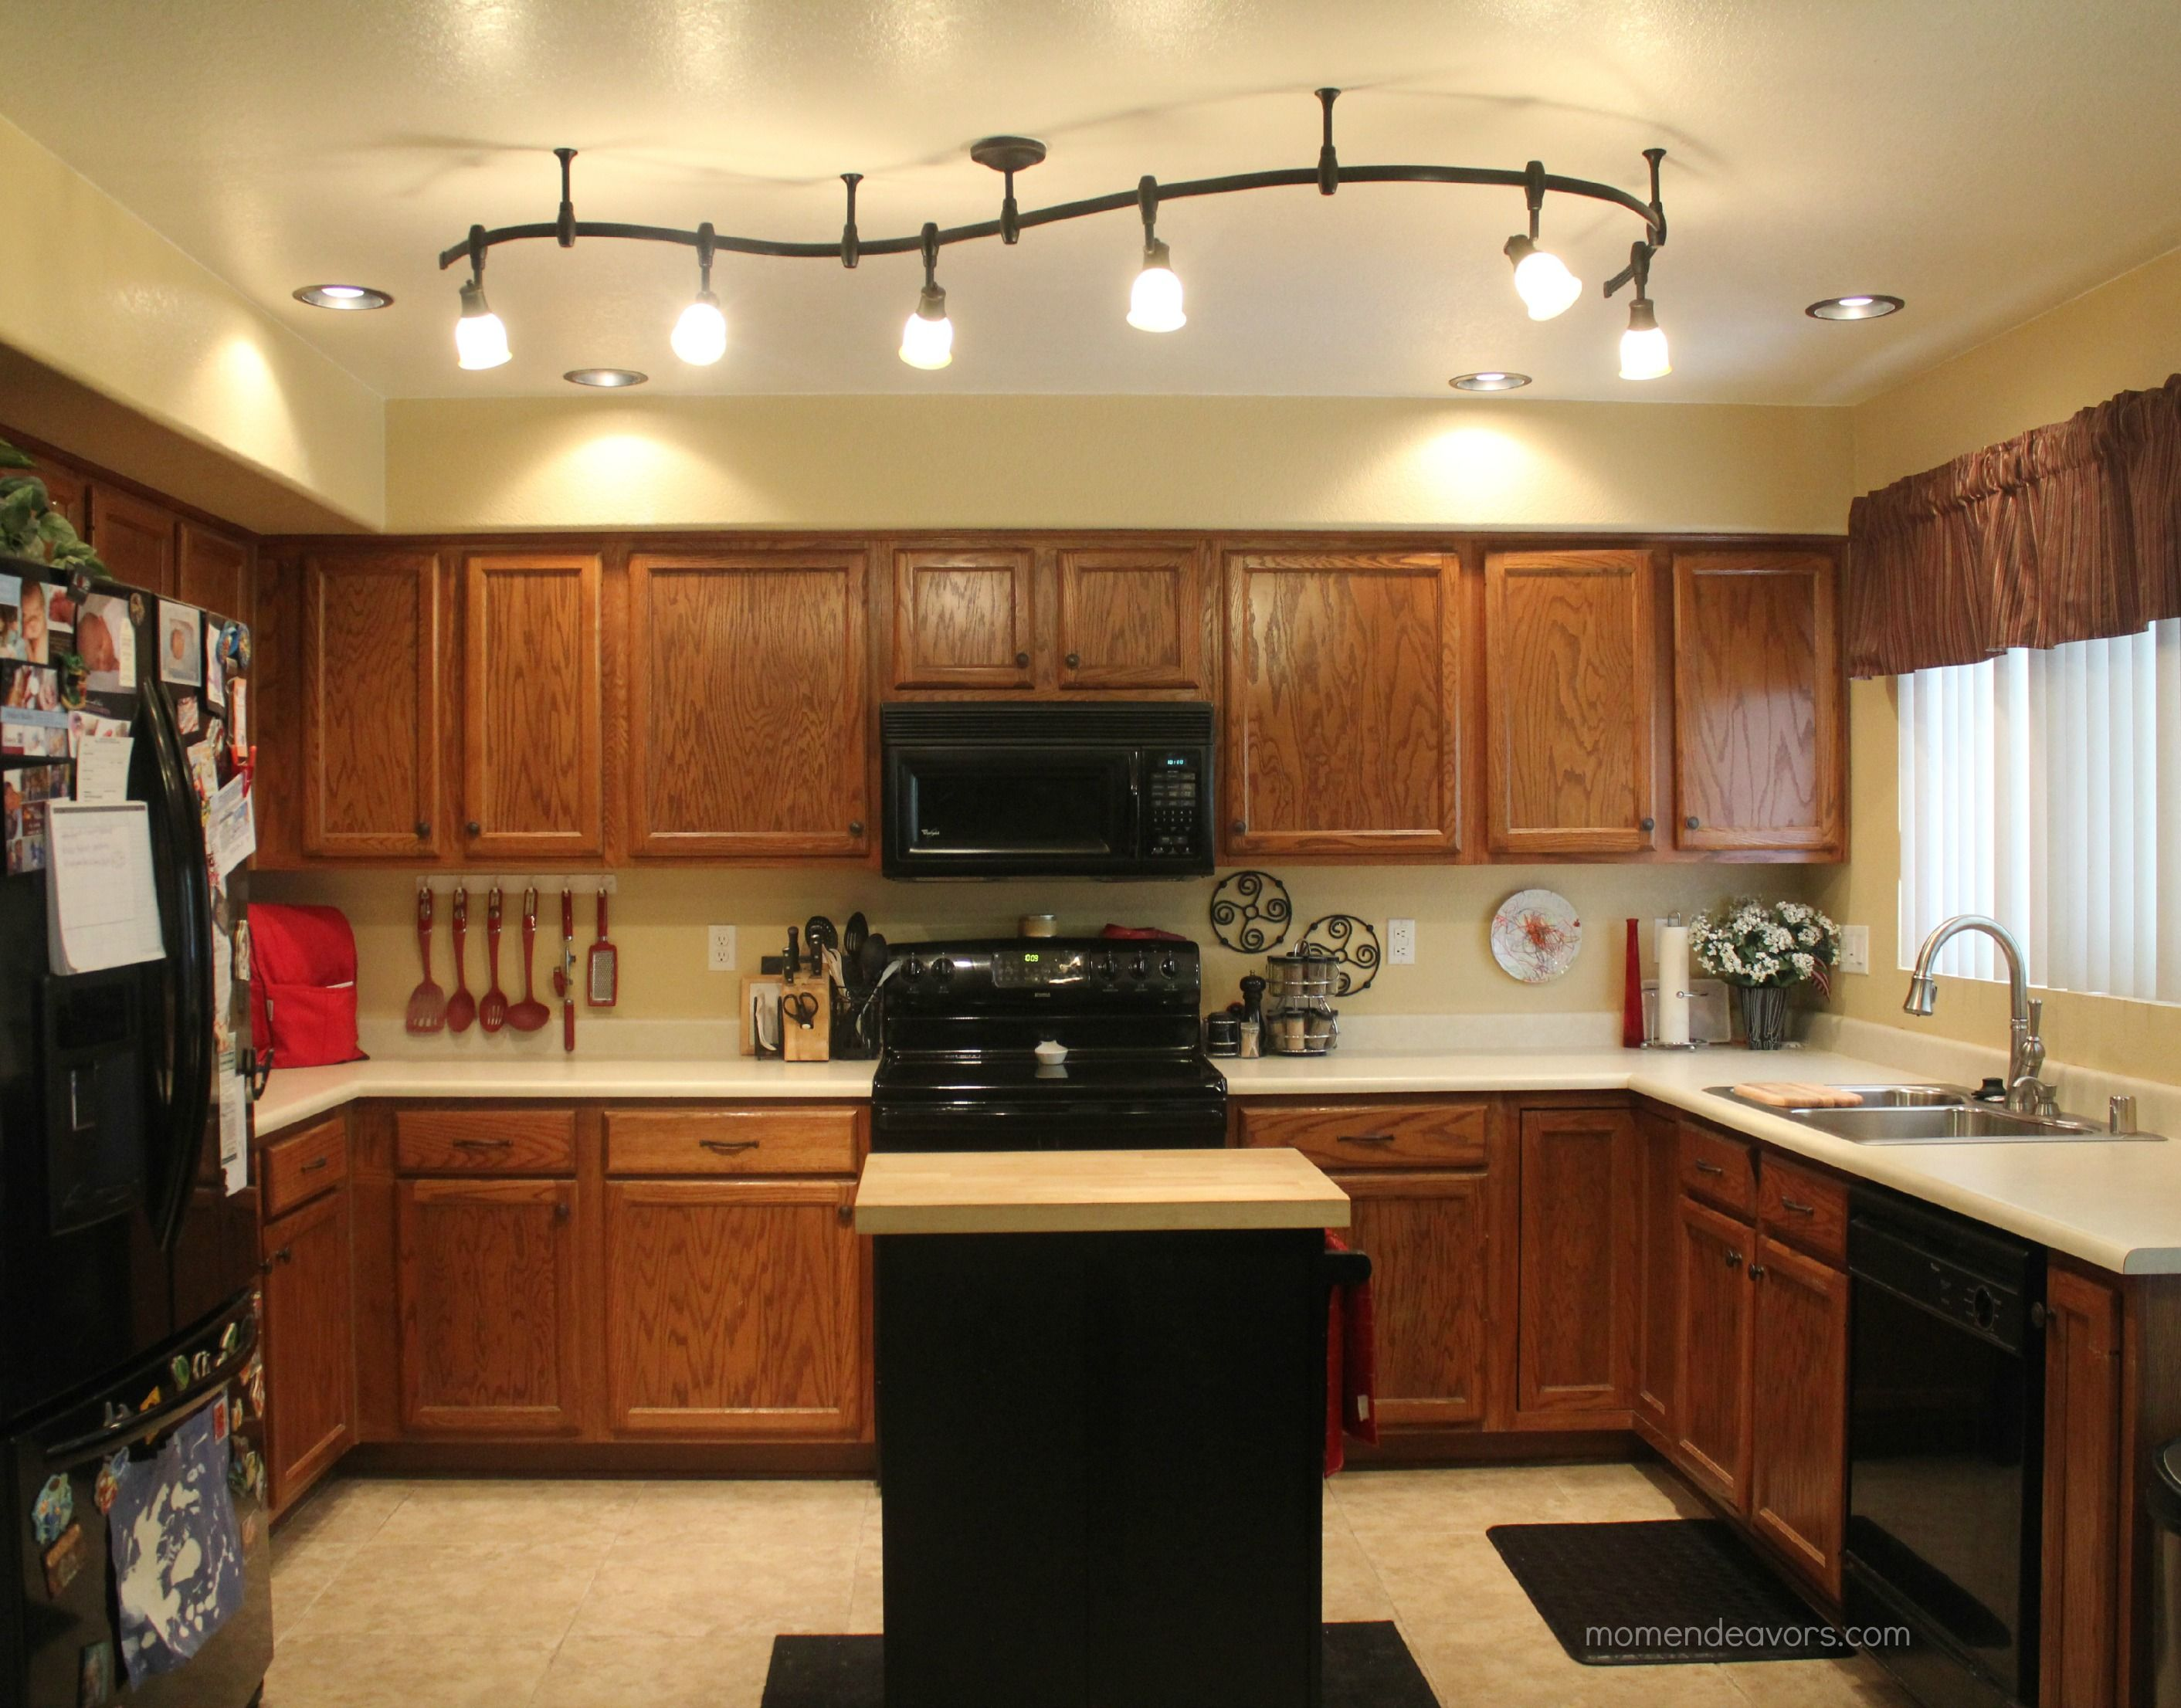 lighting kitchen lighting fixtures ceiling 11 Stunning Photos of Kitchen Track Lighting